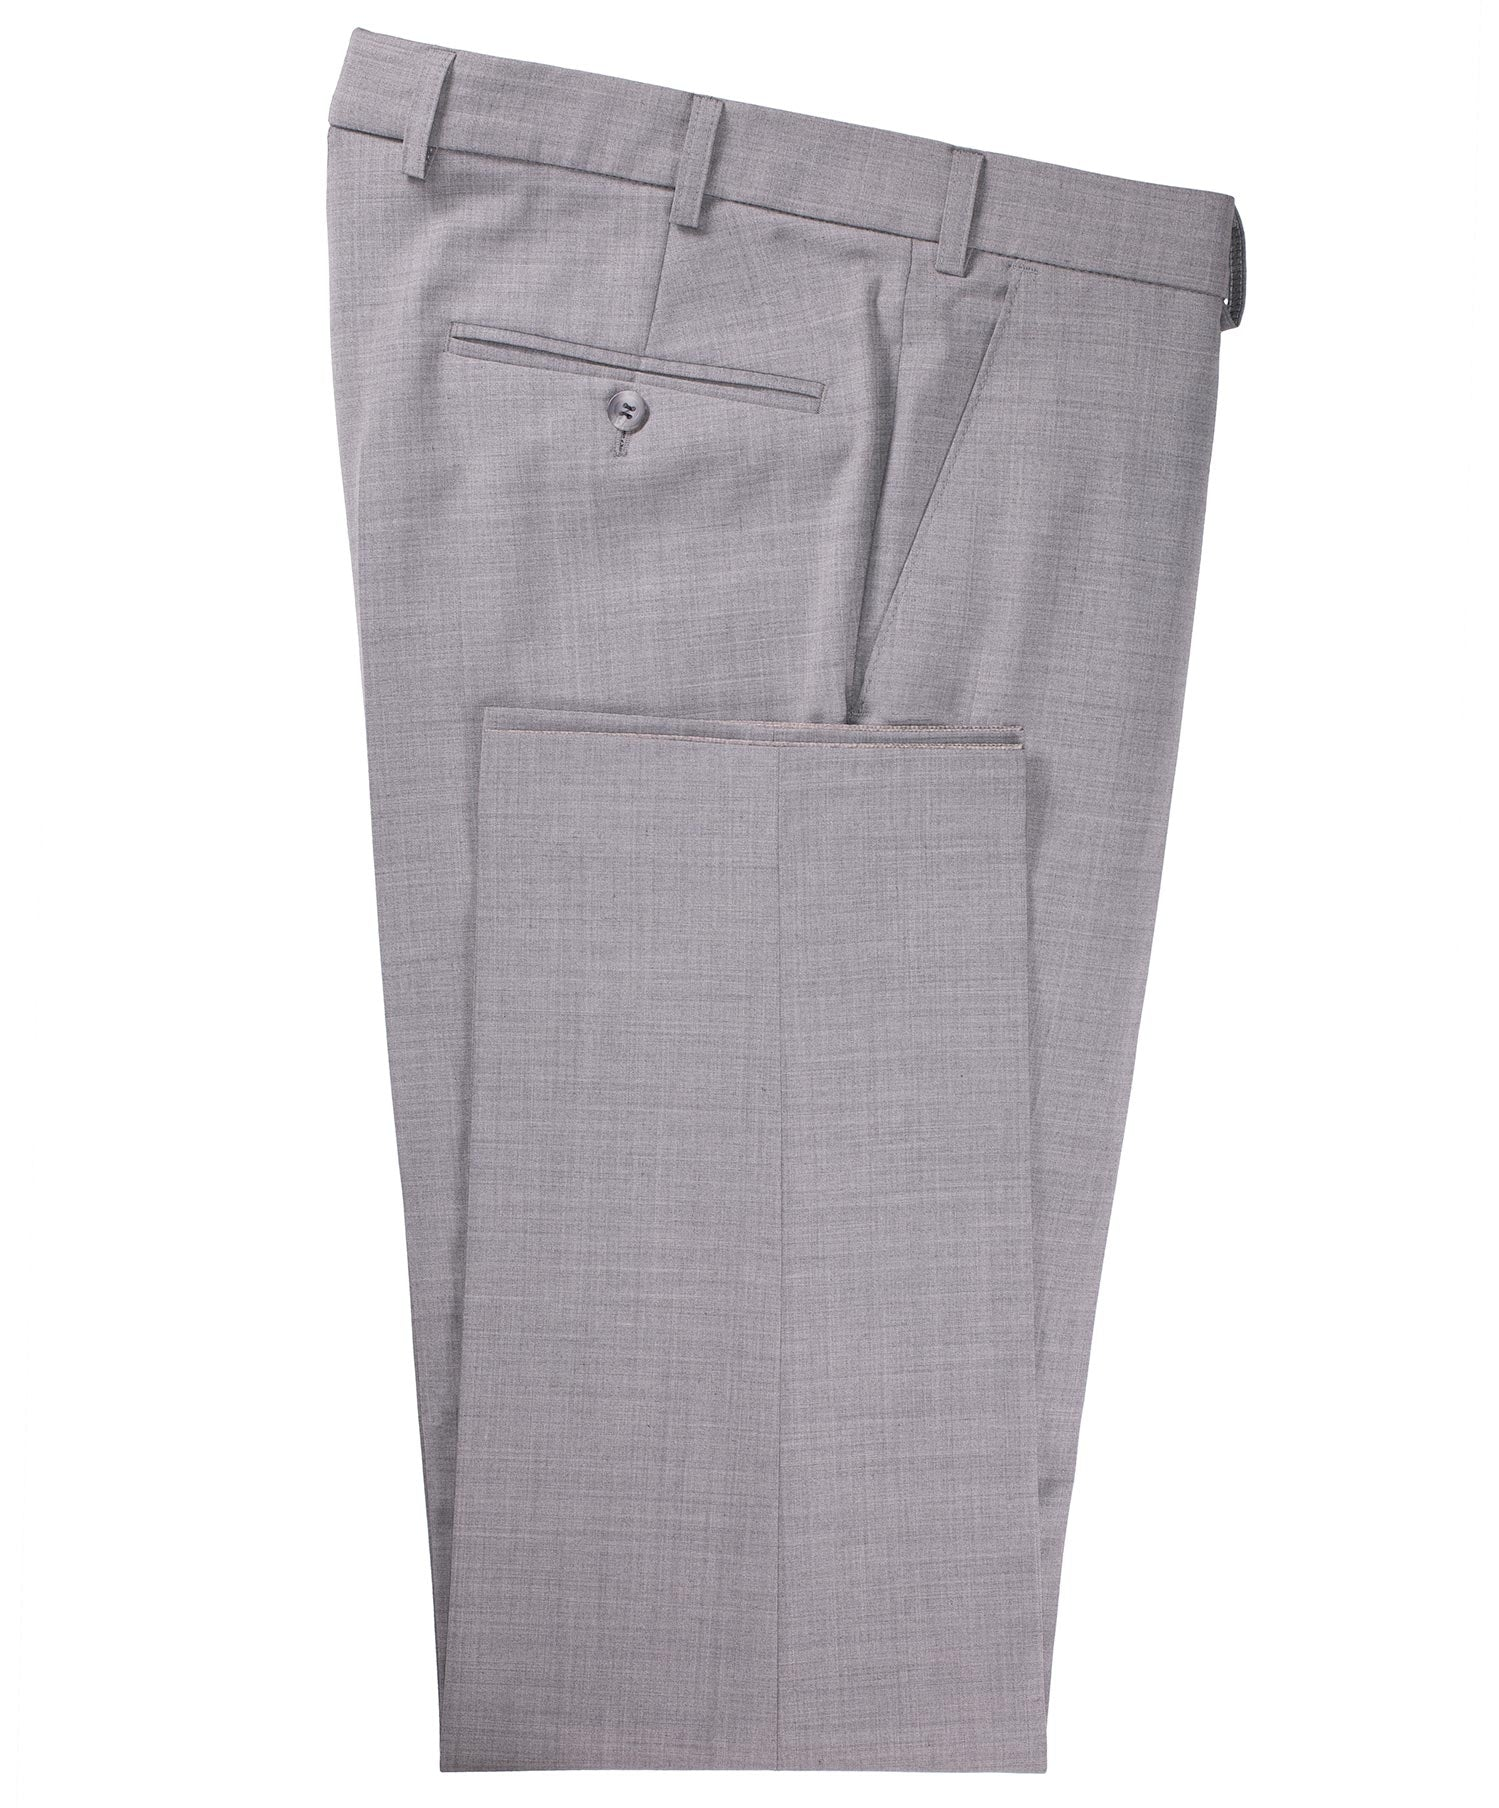 Madrid Light Grey Dress Pants